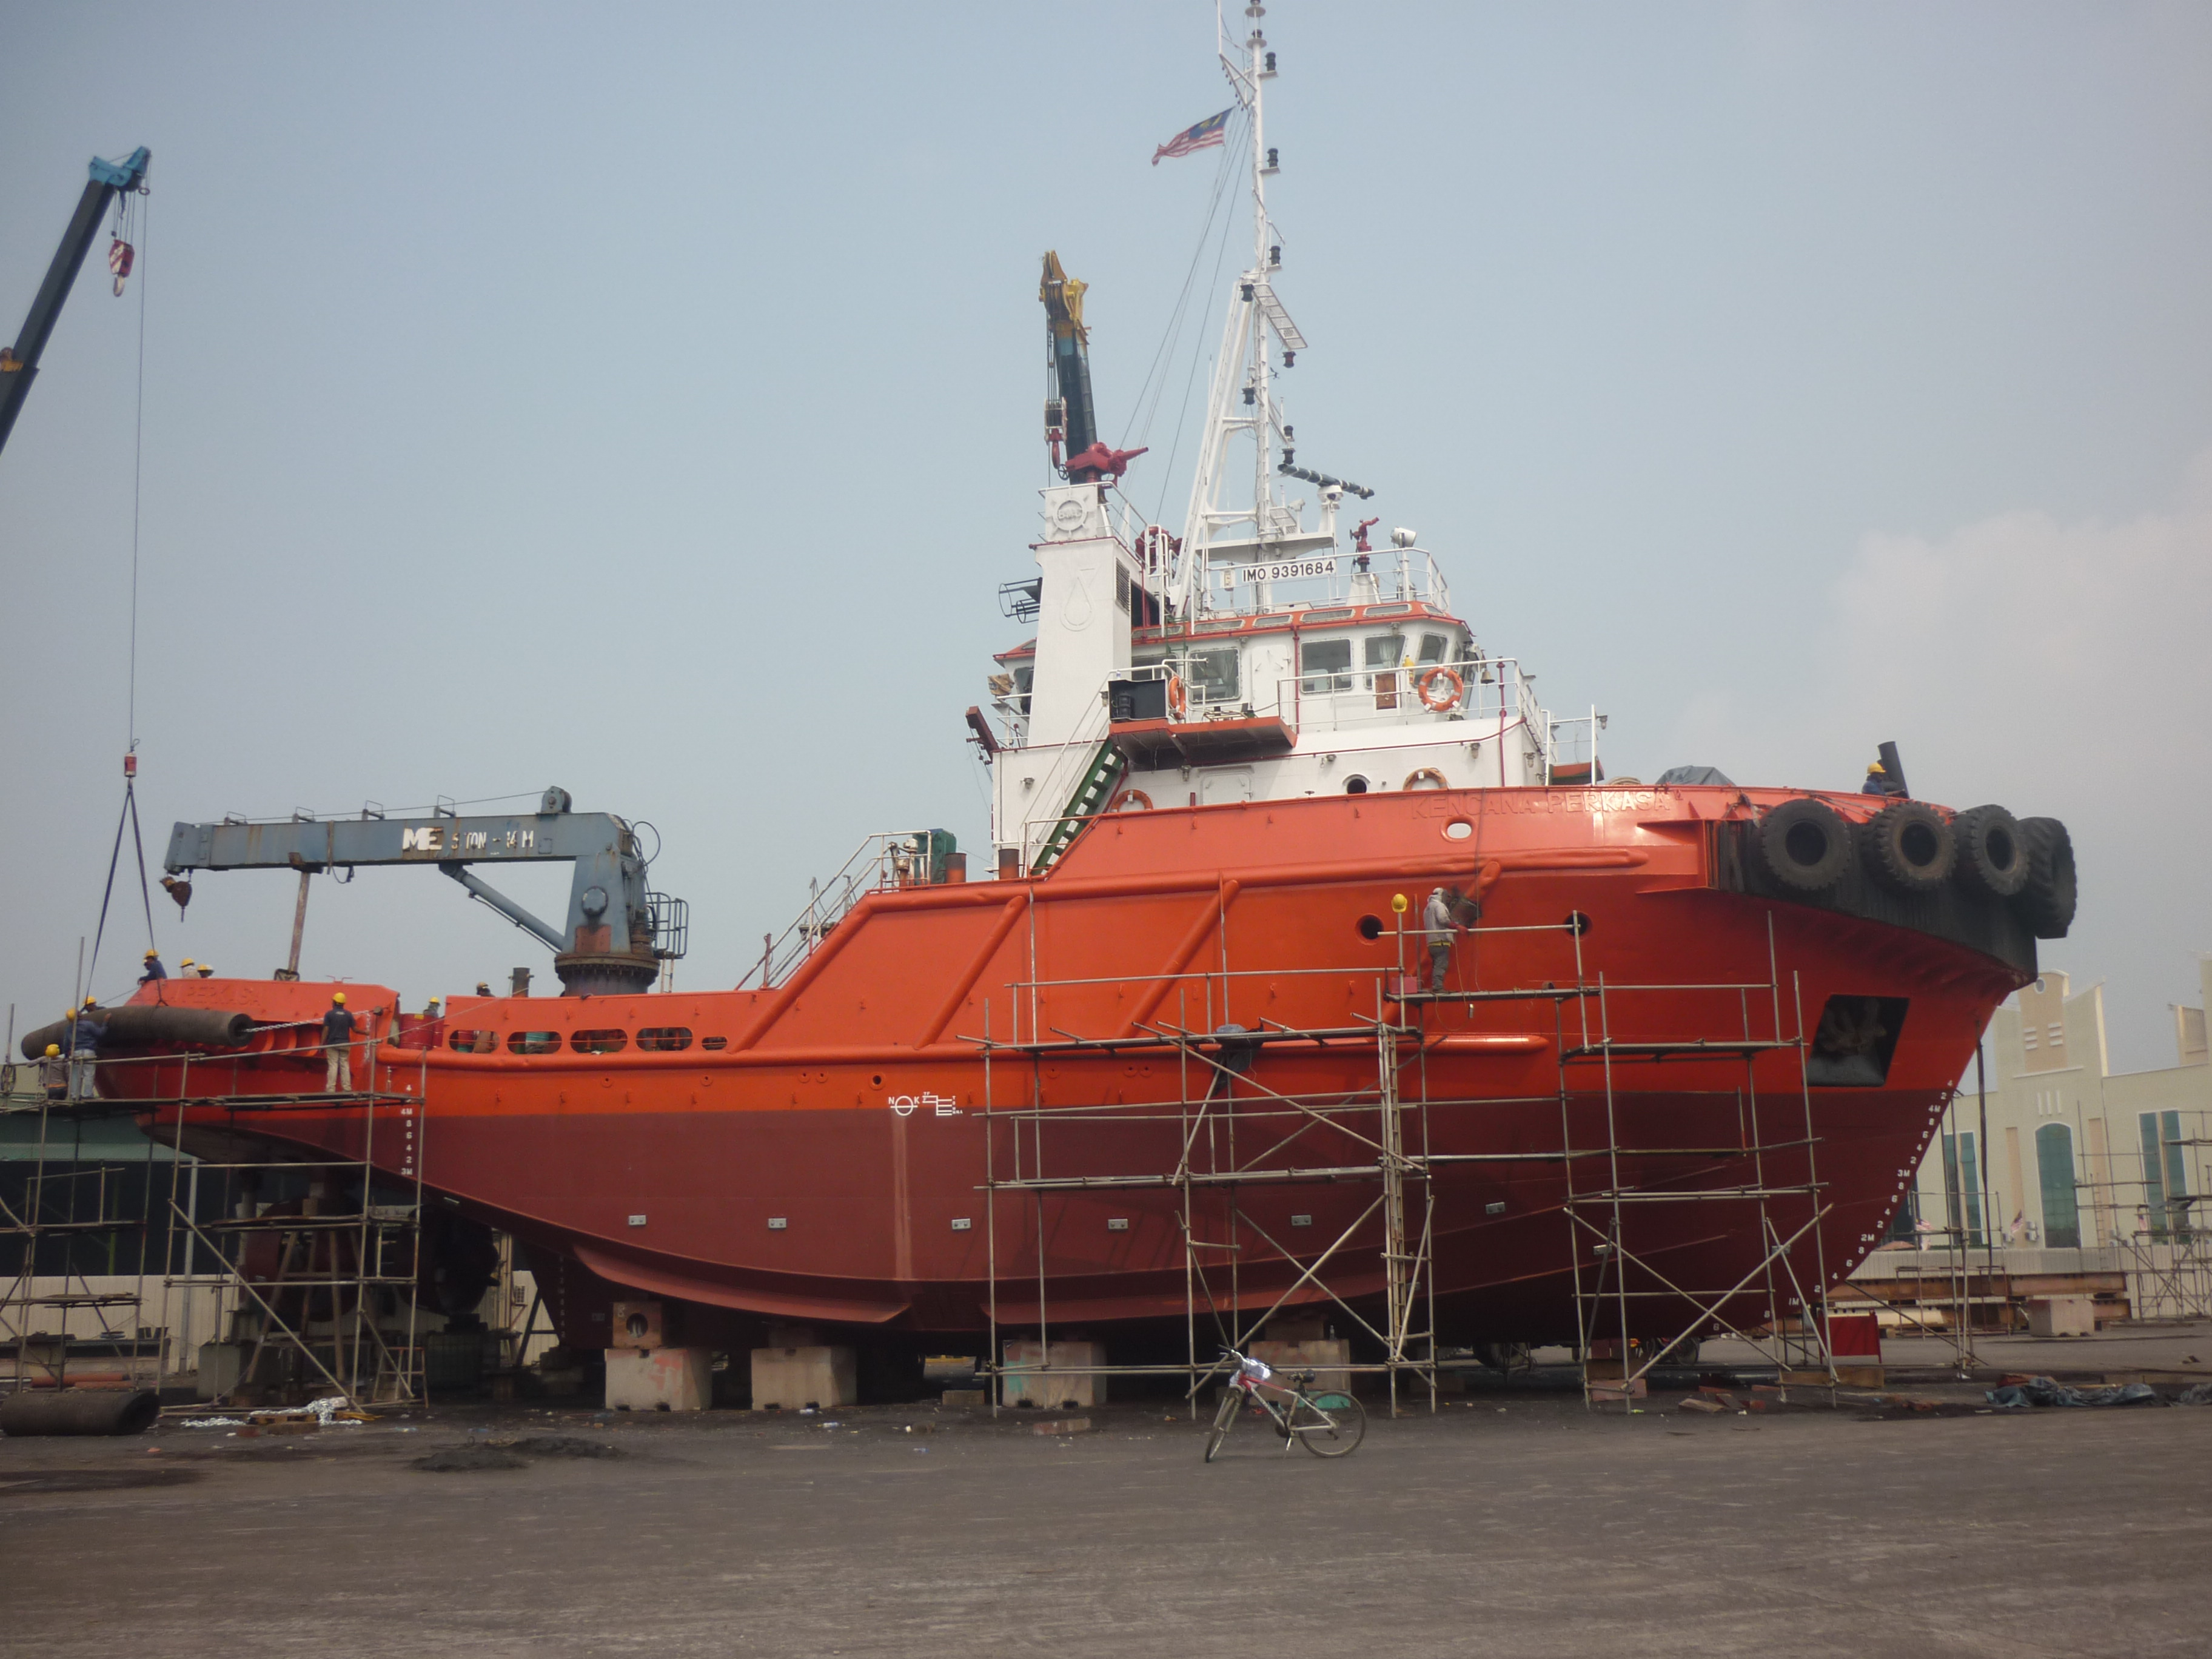 Lunar Shipping Malaysia | Tug & Barge Charter Based In Port Klang